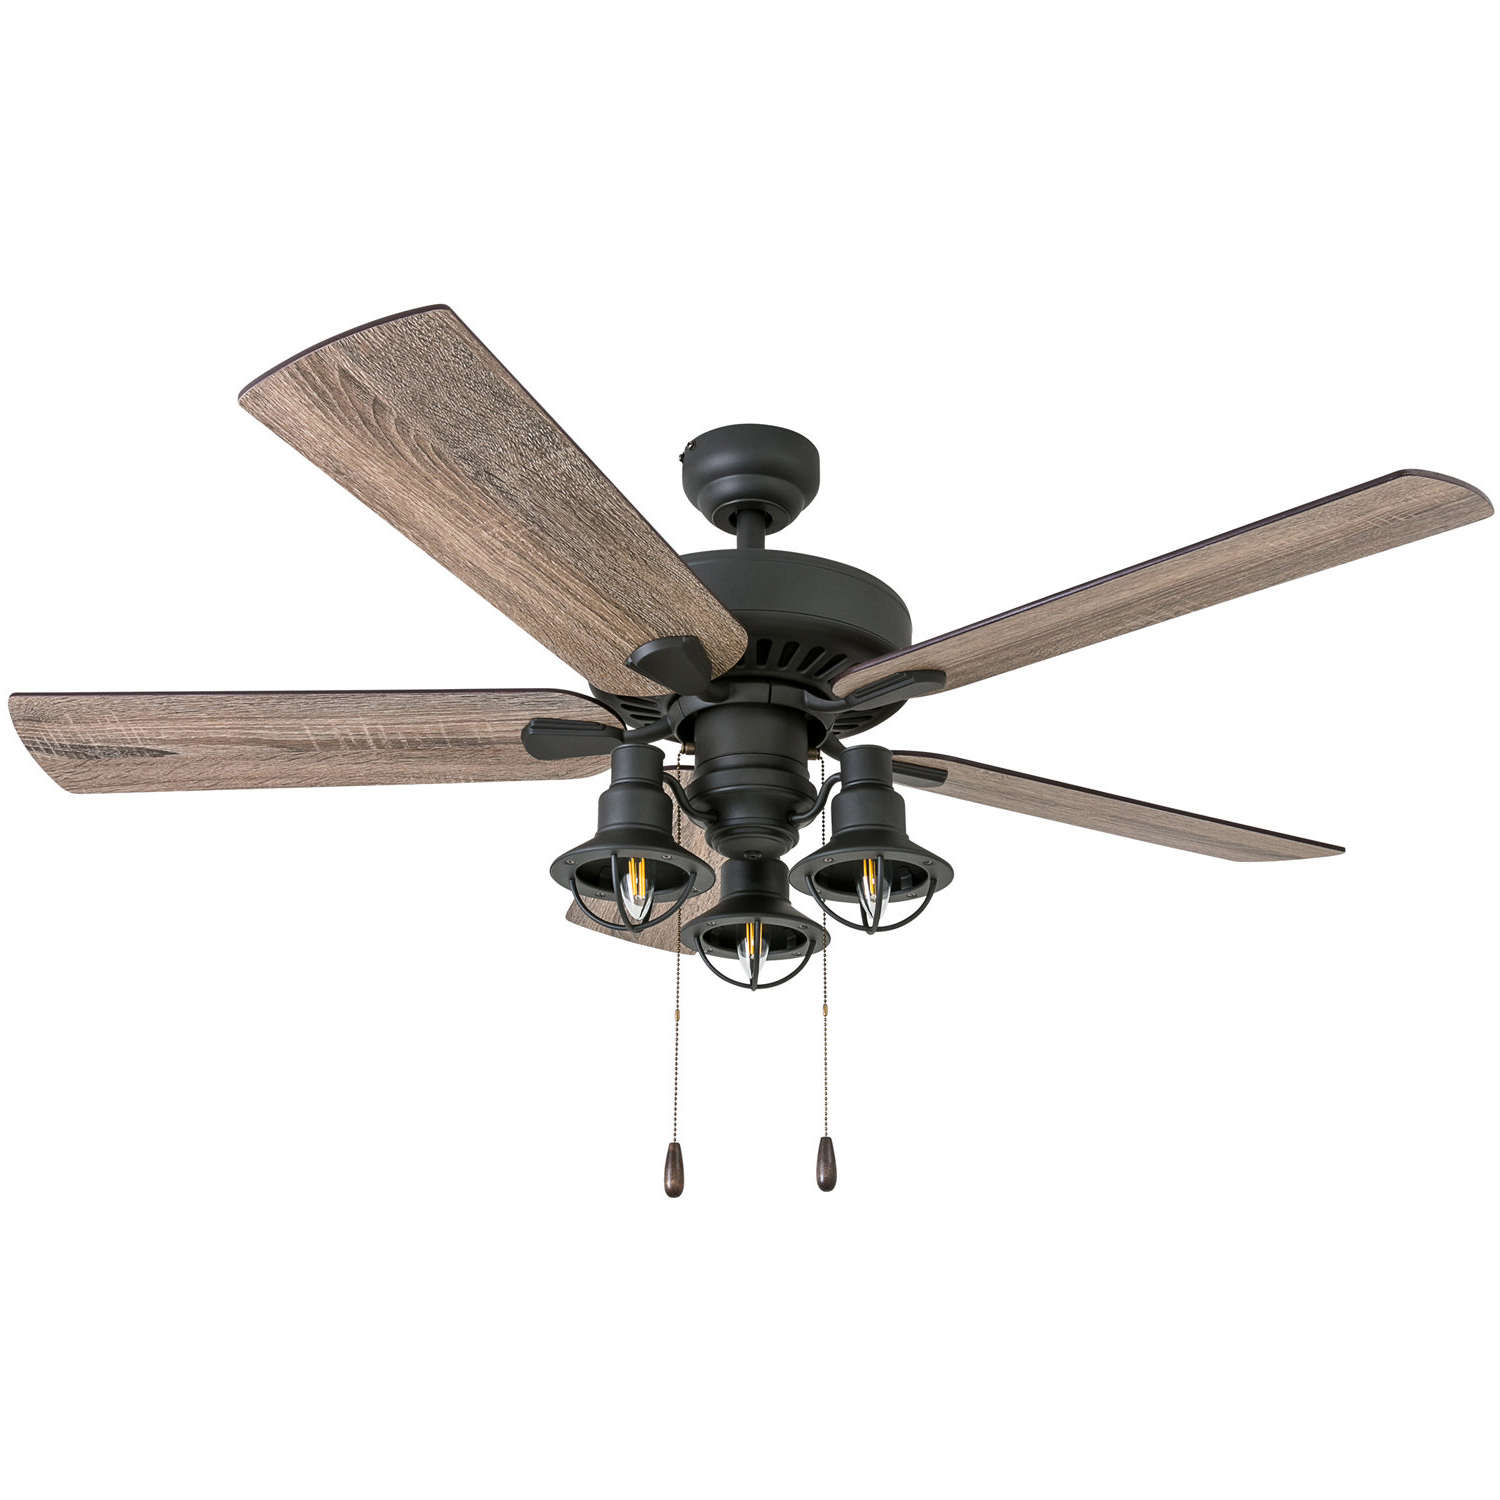 "Recent 52"" Ravello 5 Blade Led Ceiling Fan, Light Kit Included Regarding Ravello 5 Blade Led Ceiling Fans (Gallery 1 of 20)"